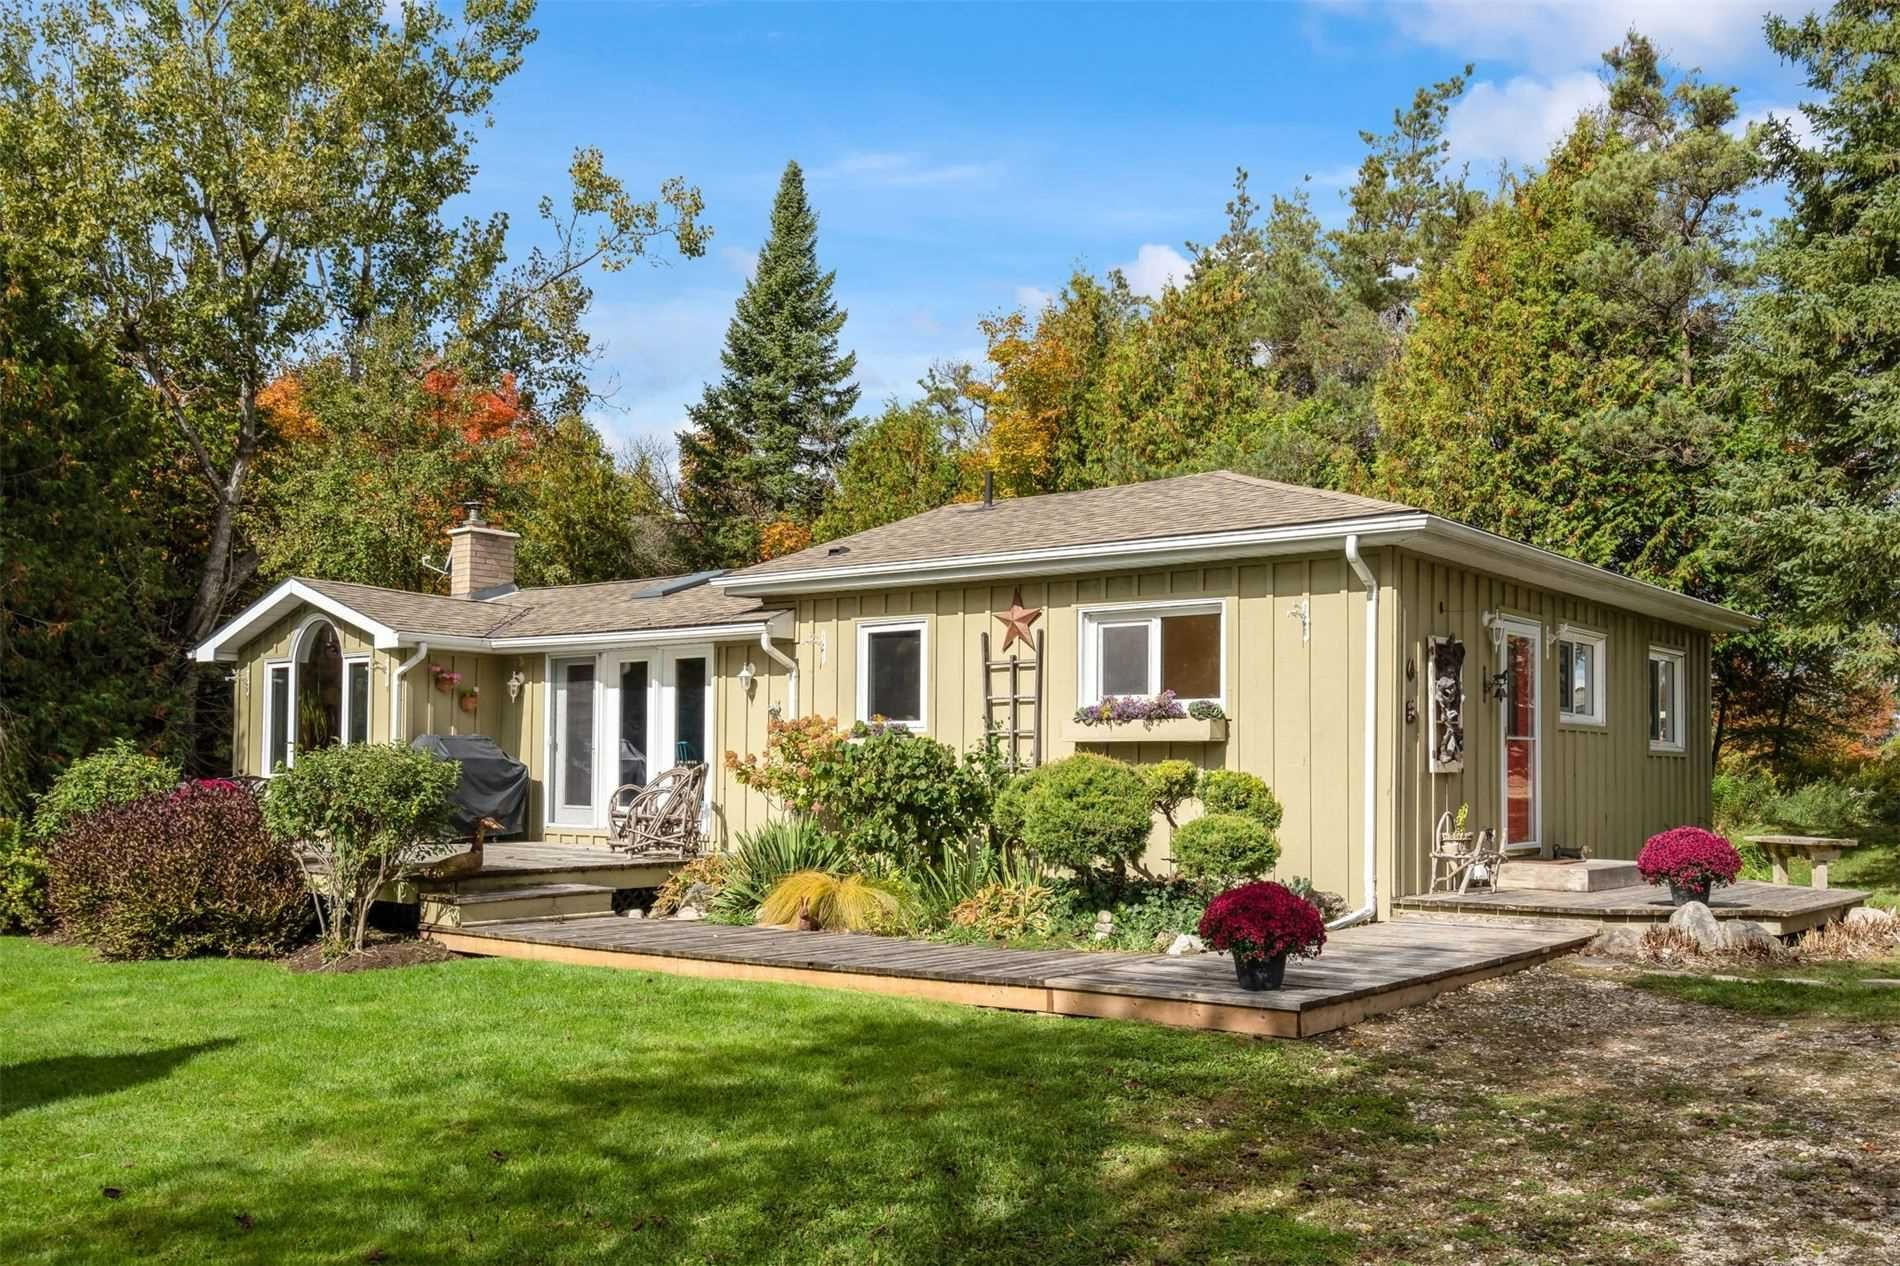 Main Photo: 596302 2nd Line W in Mulmur: Rural Mulmur House (Bungalow) for sale : MLS®# X4944153